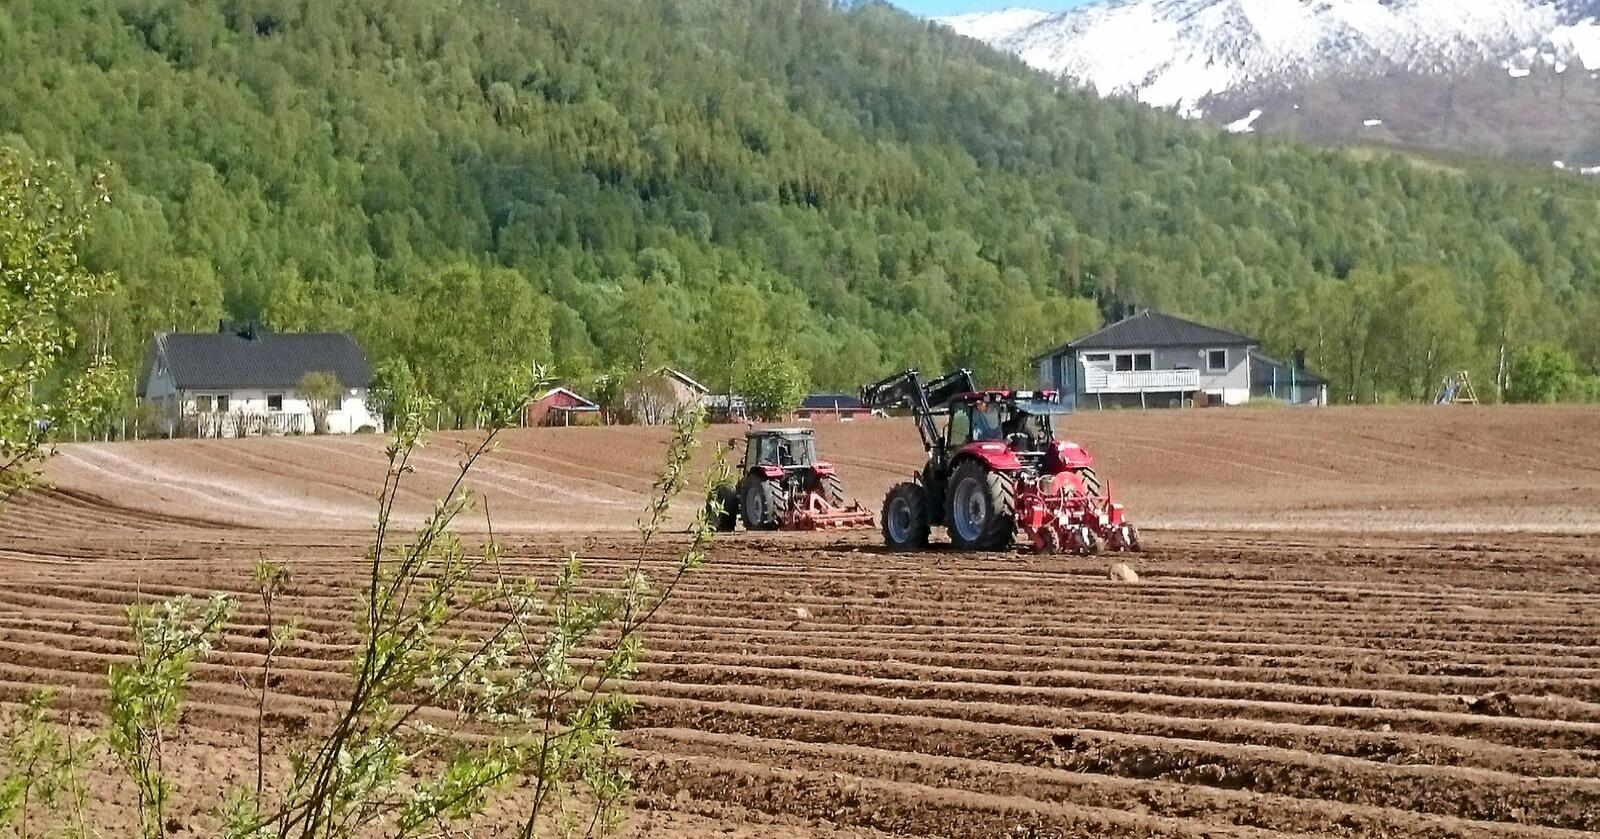 The northern Norwegian production of potatoes vegetables and berries is the northernmost in the world.